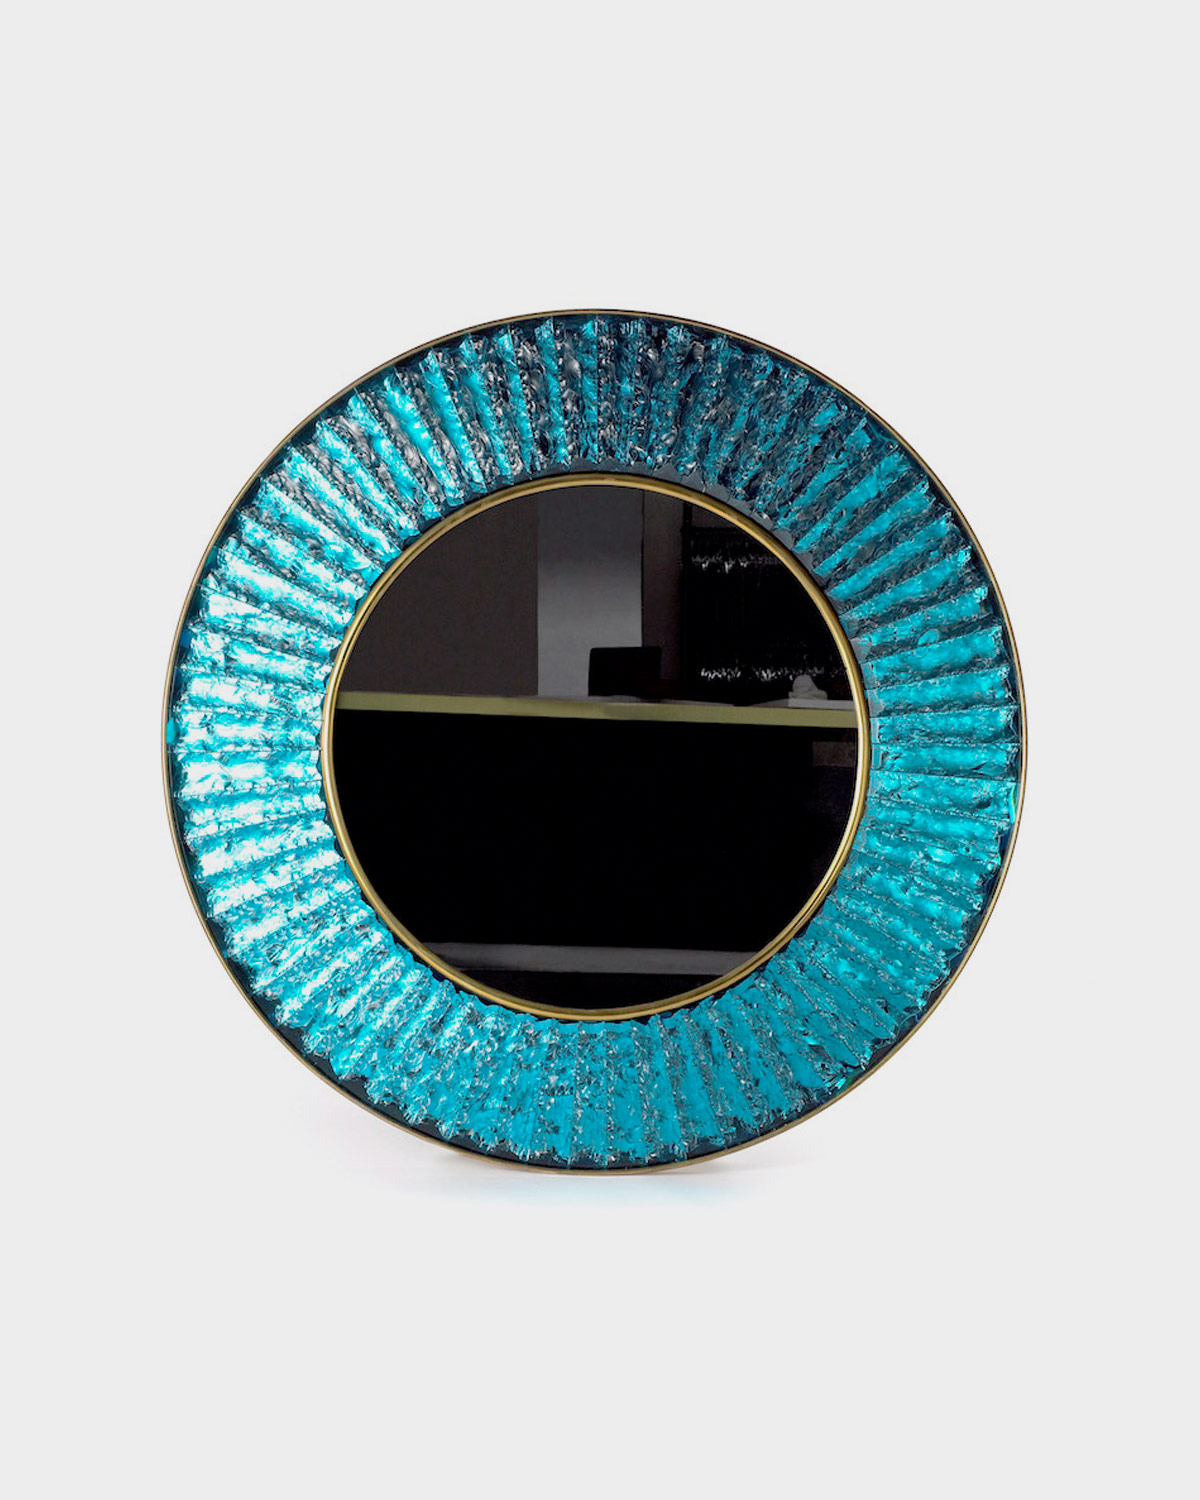 The Large Studio Mirror in Blue by Ghiro